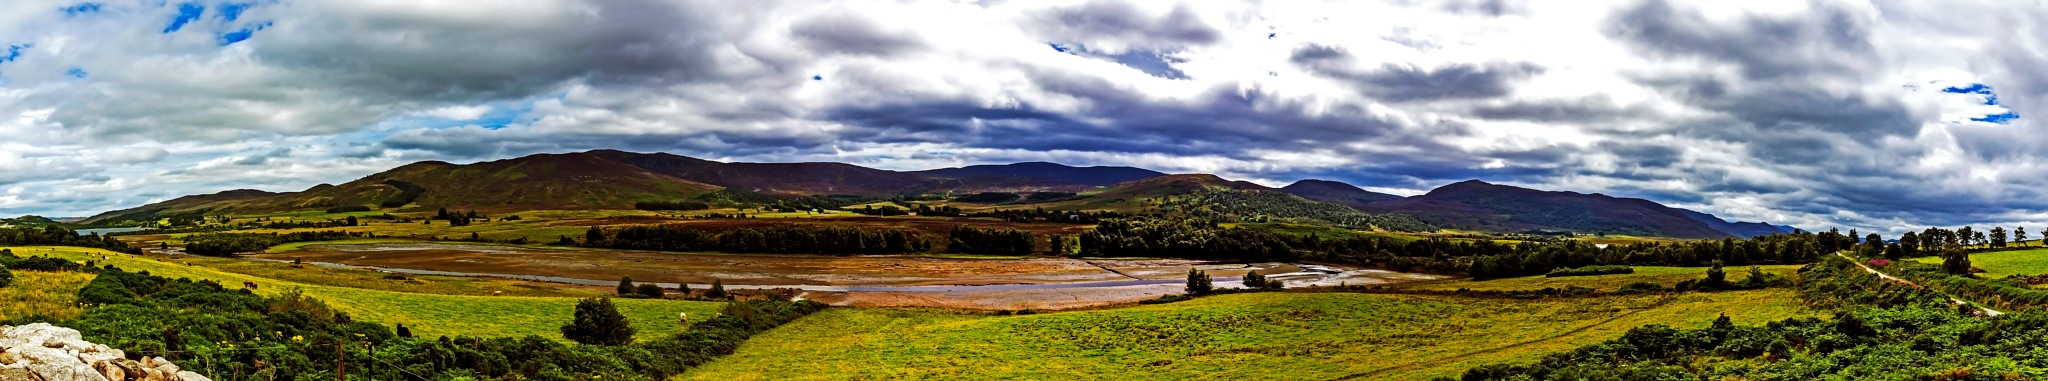 4709-hdr panoramic. by TommyThain